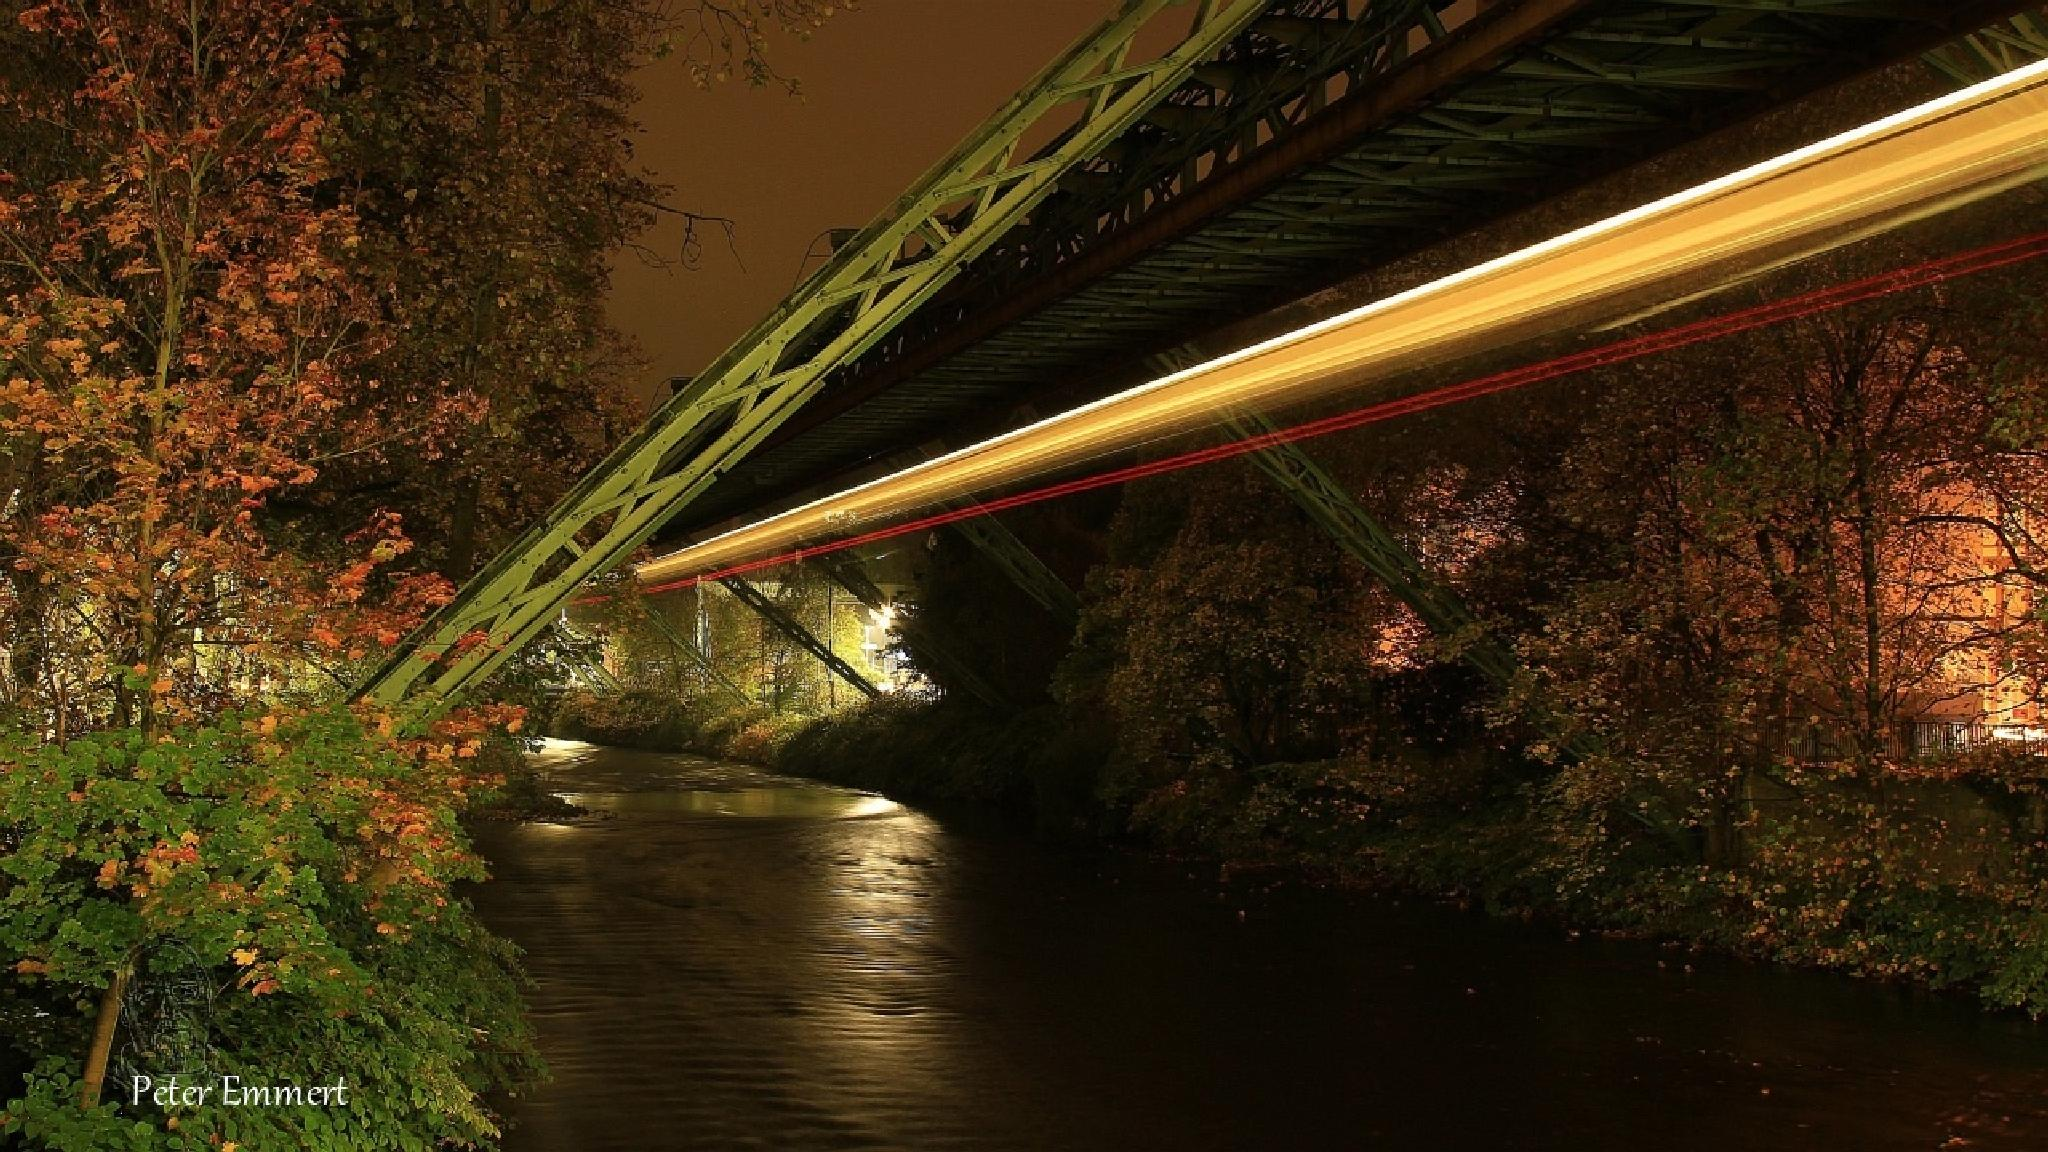 Wuppertal monorail at night. five by Peter Emmert